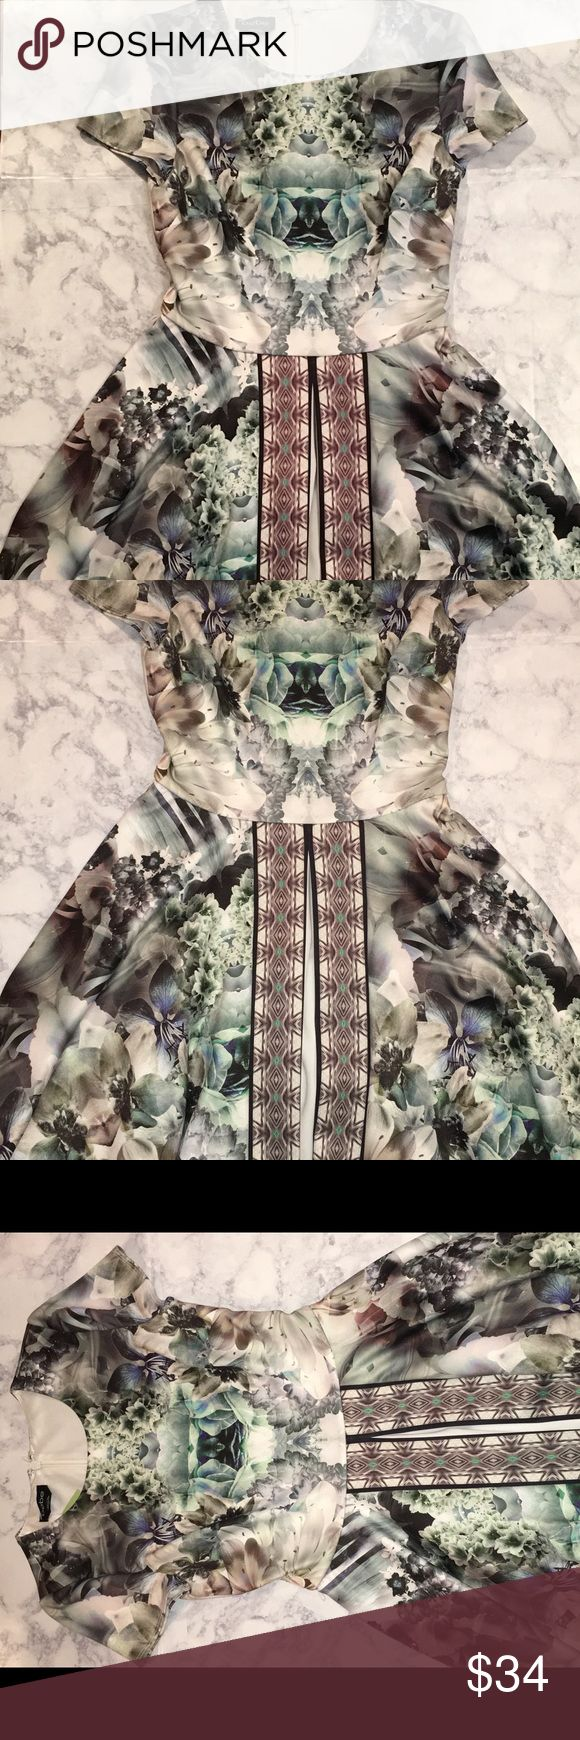 Weekend Sale 🎉 bebe Floral Dress bebe Floral Dress - Short Sleeve A Line Dress                                                         Size: Small / Colors: White, Green, Grey Floral Print                     Shell & Lining : Polyester, Spandex — Back Zipper               Gently used, in mint condition                                    *Cute dress to wear to a wedding or cocktail party! bebe Dresses